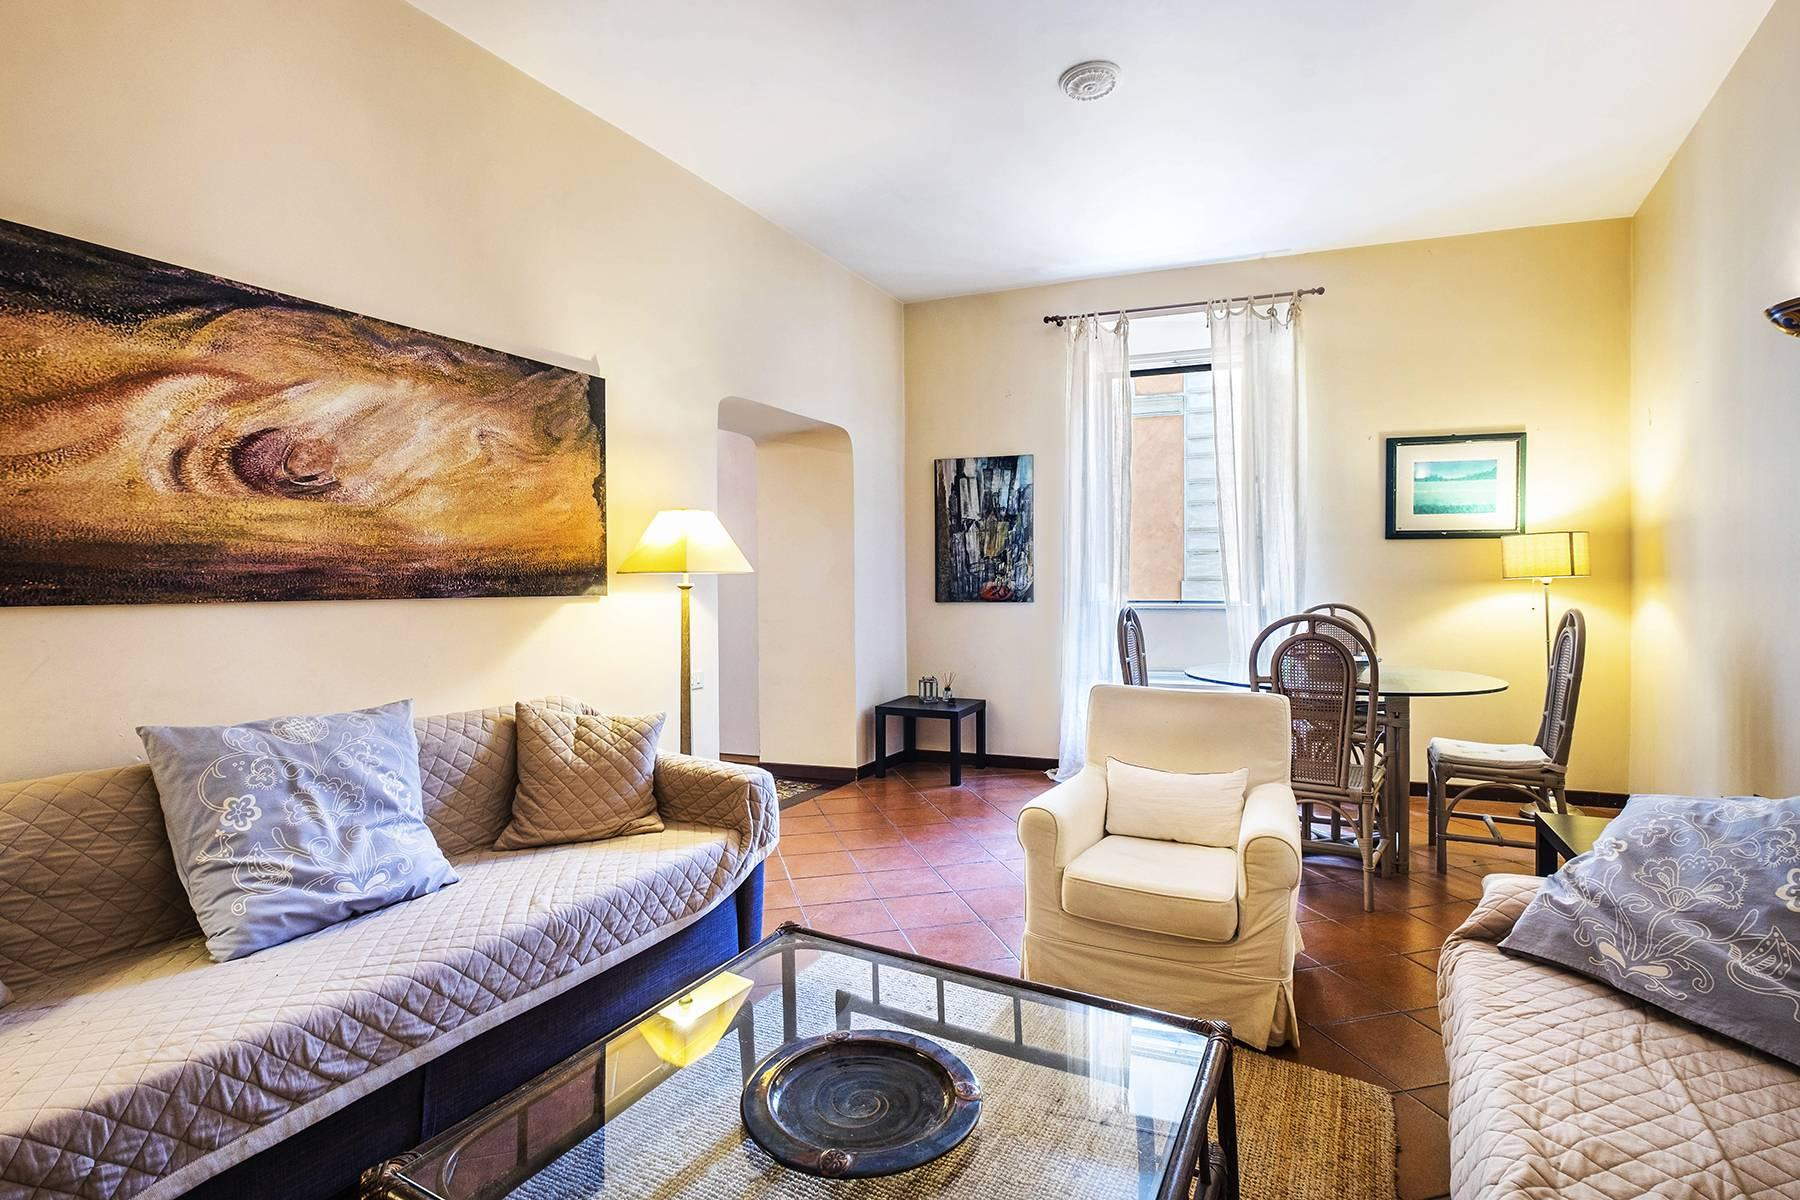 Charming apartment a stone's throw from the Palatine Hill - 2